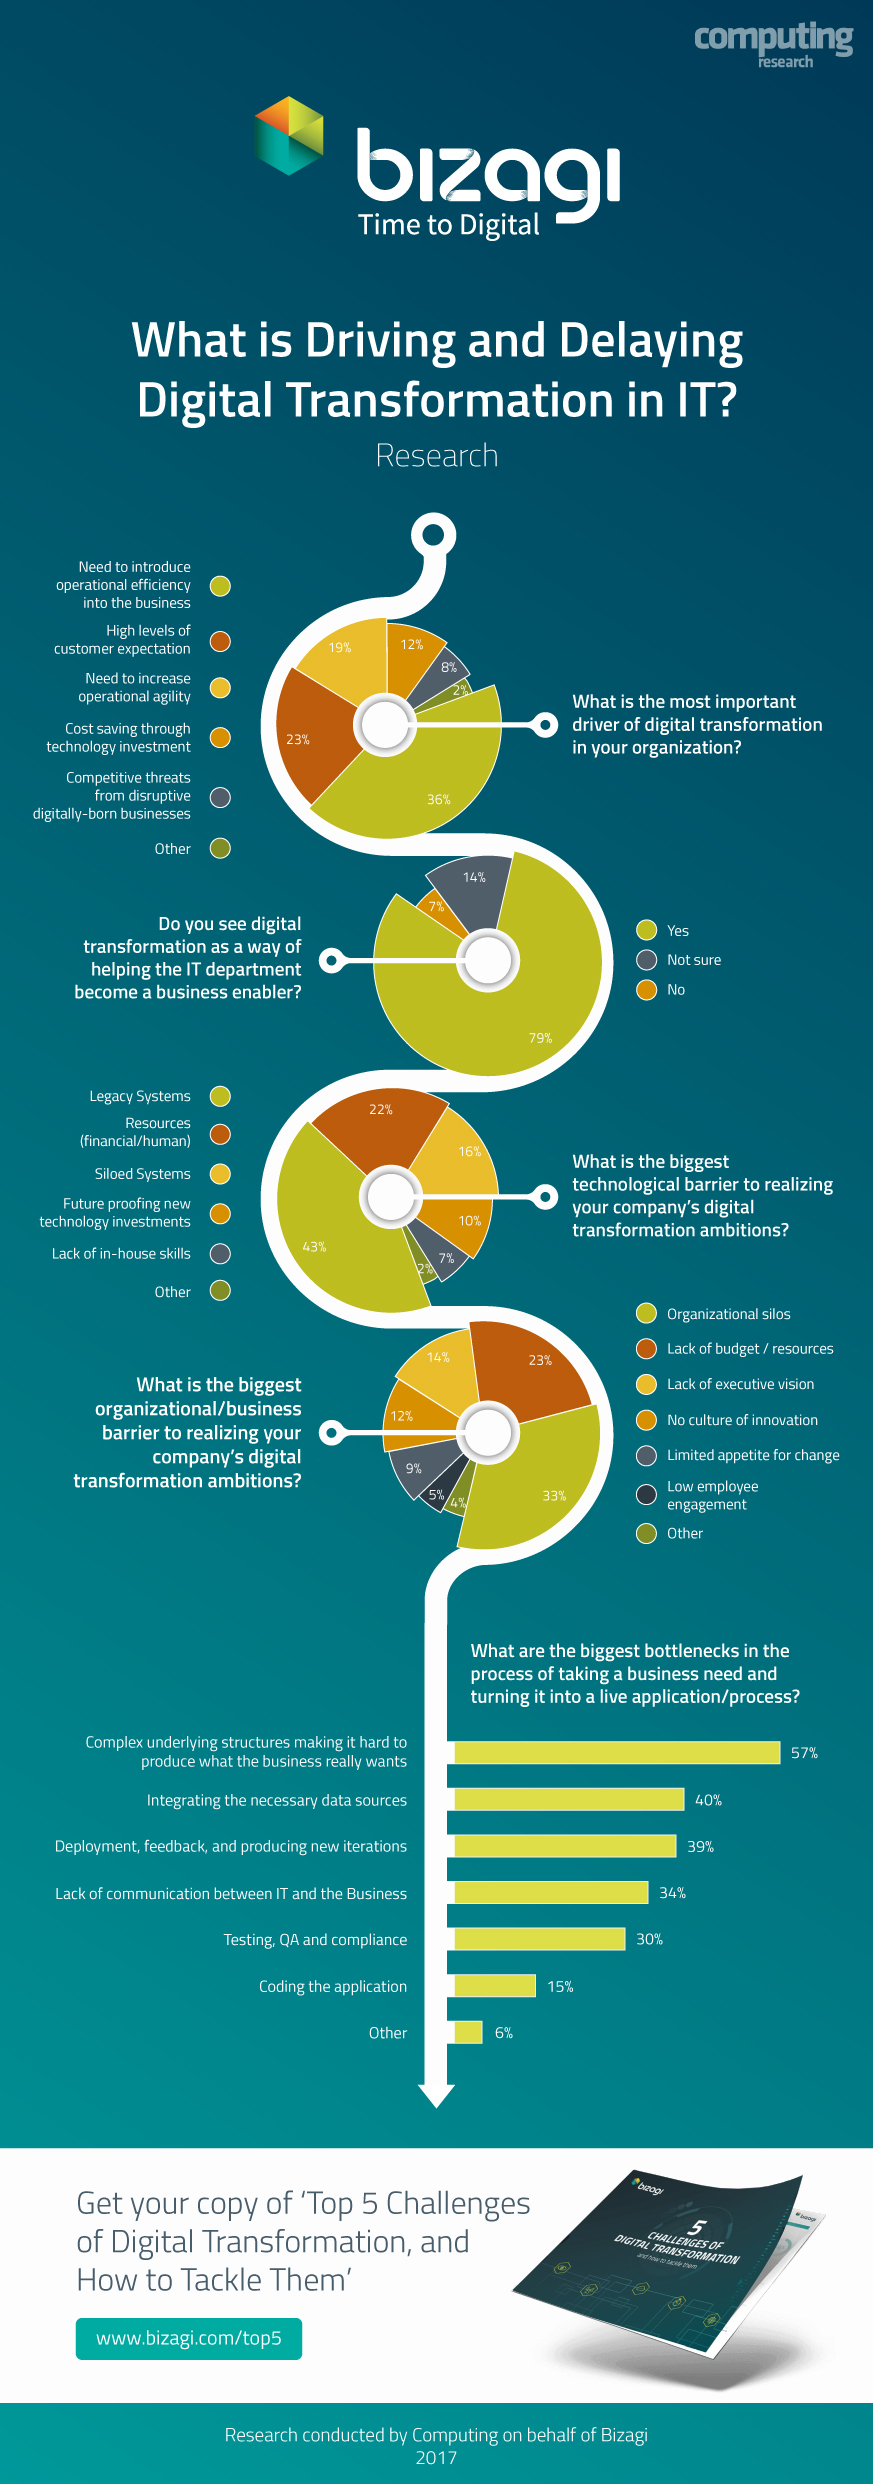 Infographic - Digital Transformation - Computing Research